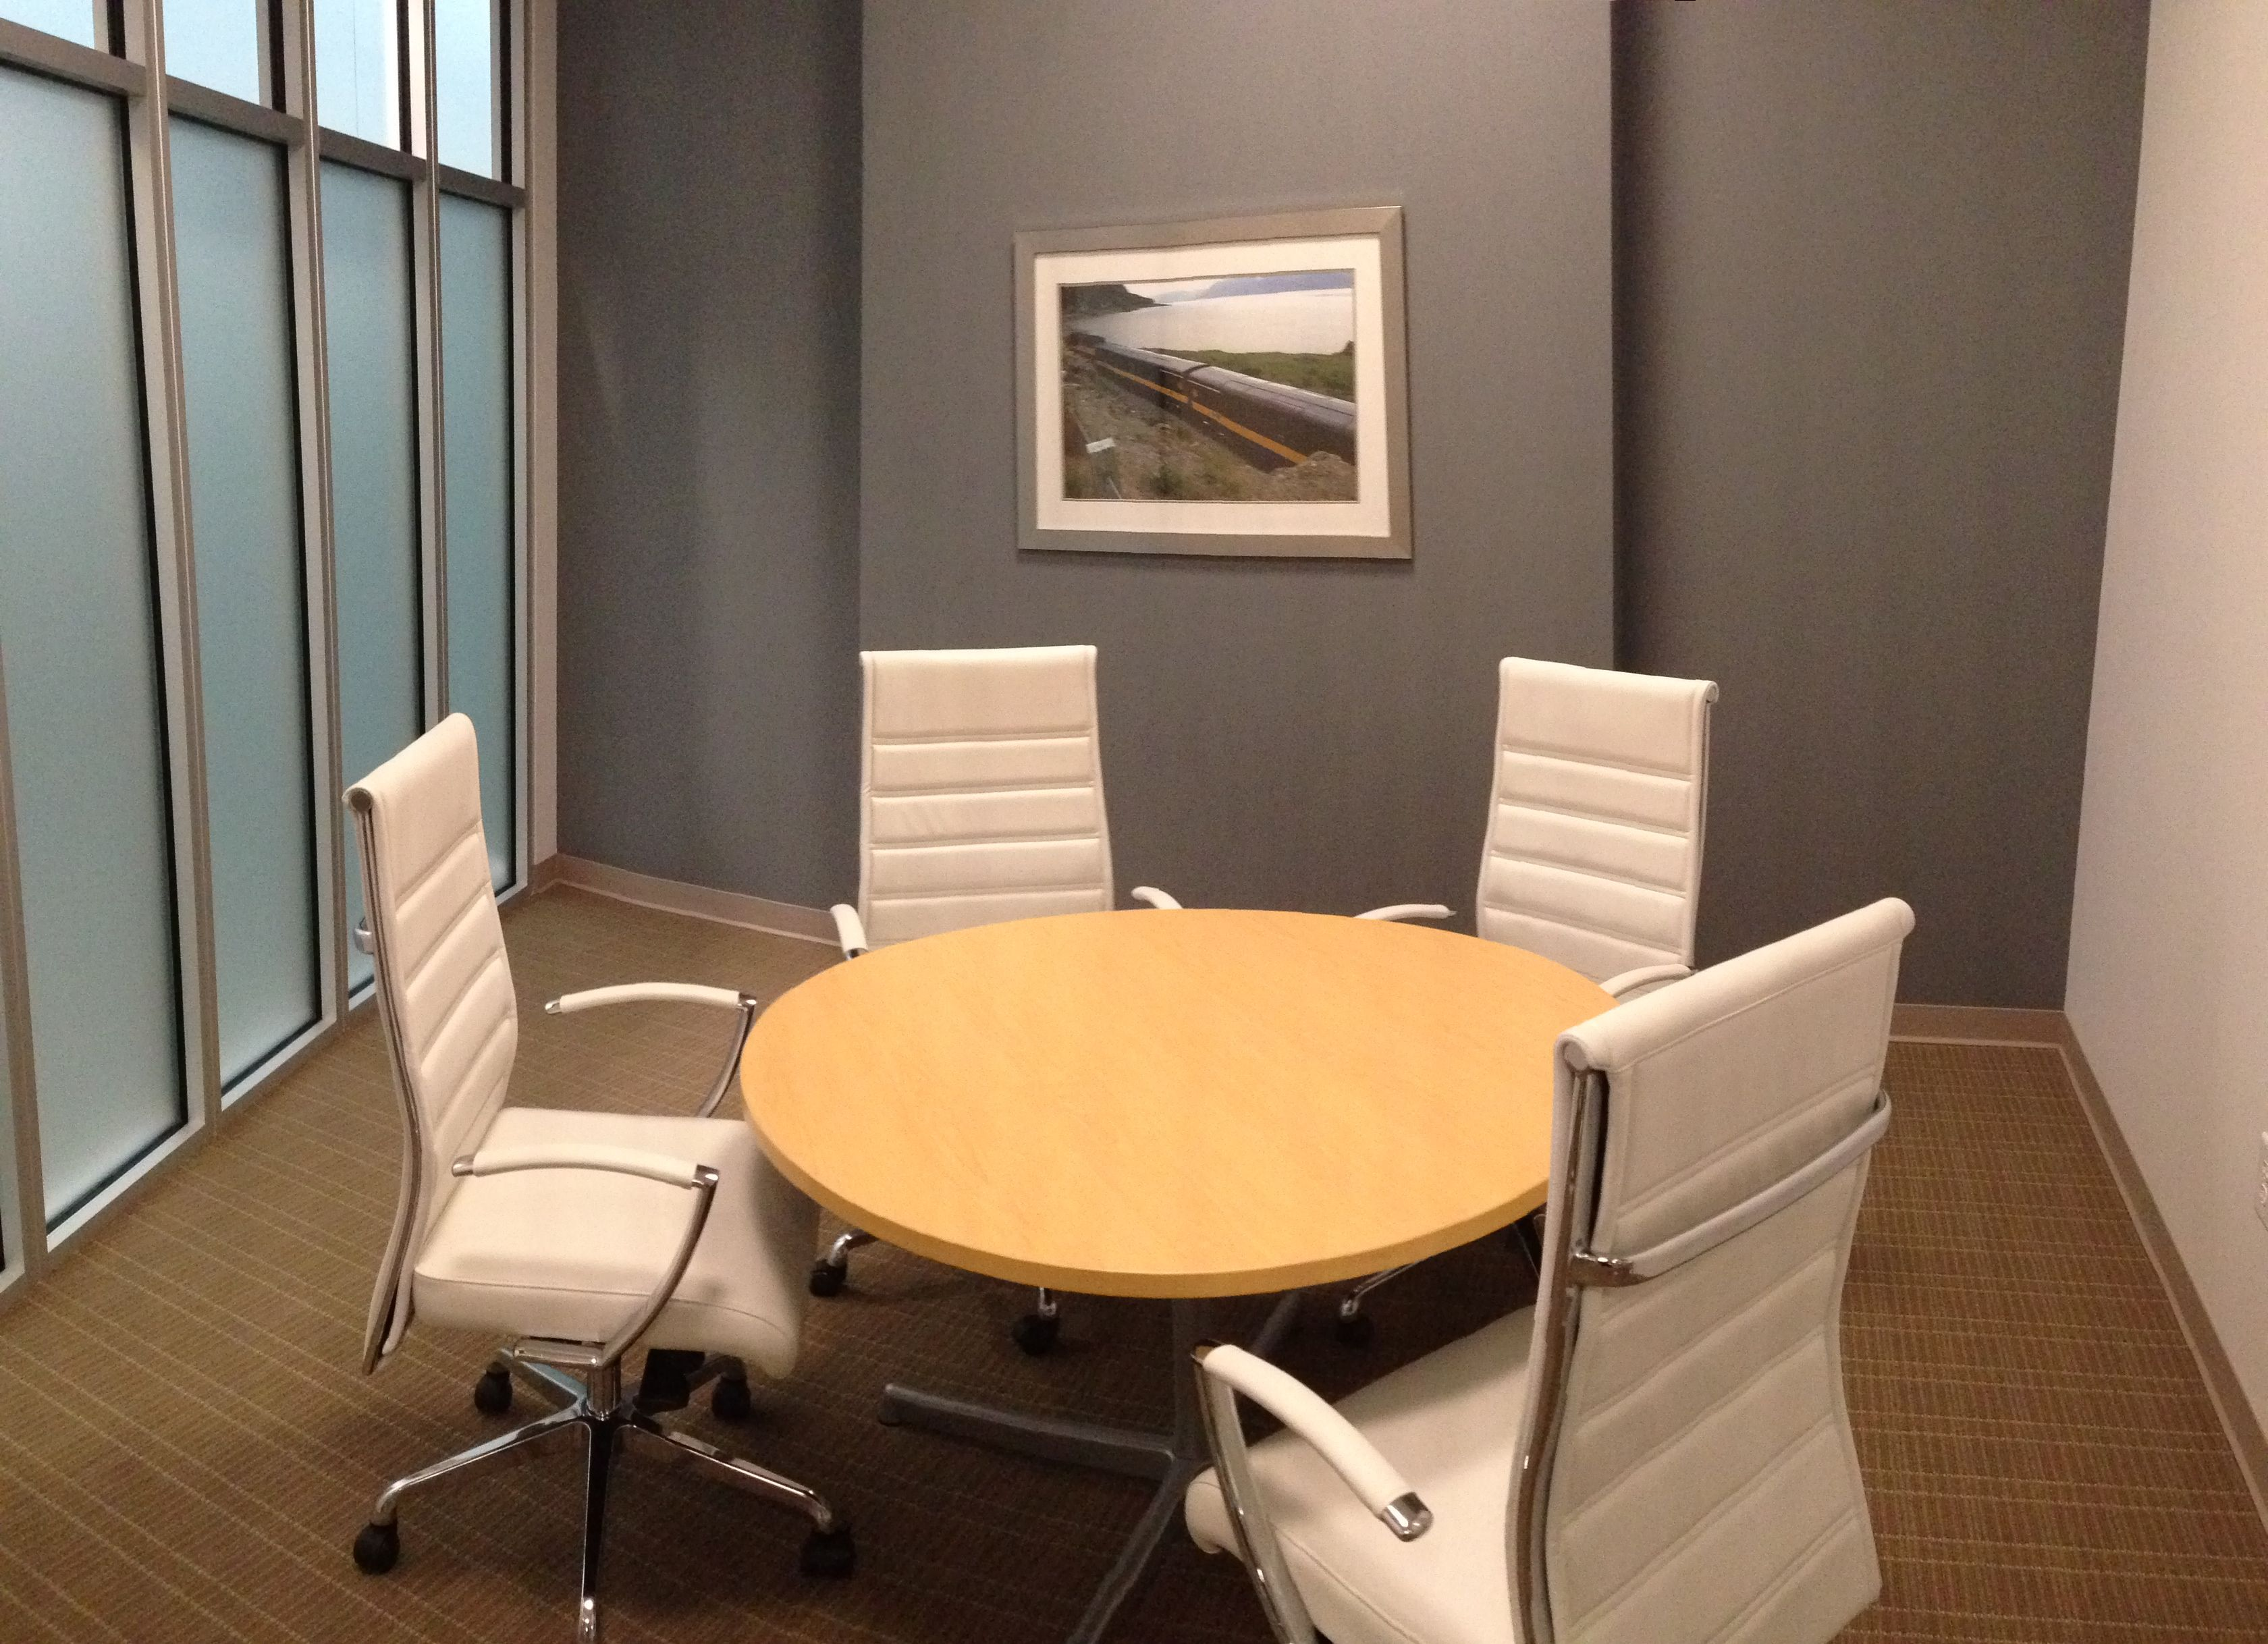 Conference Room Decorating Small Conference Room Interior Projects Cda Architects